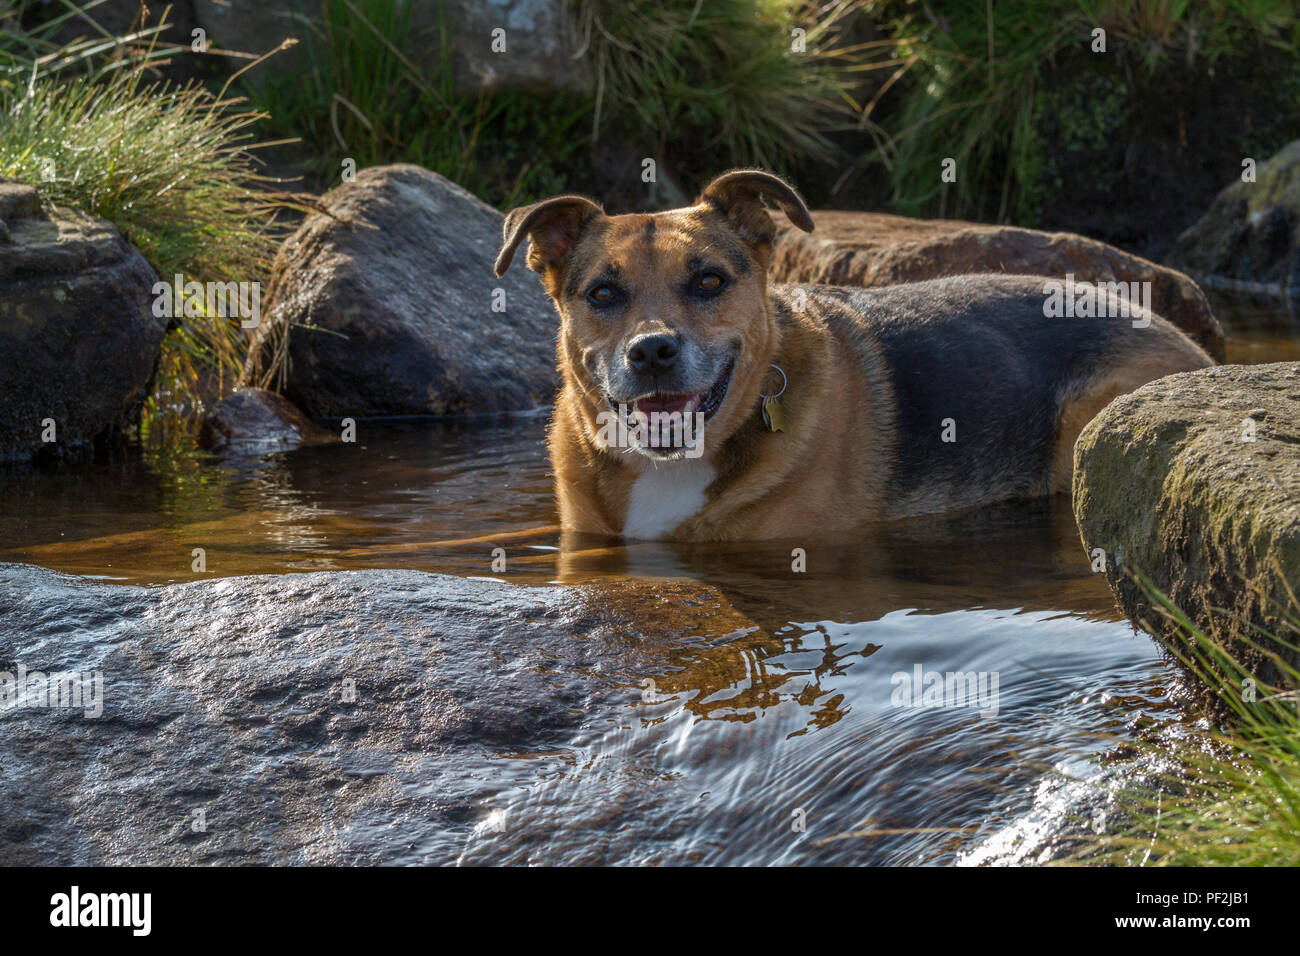 Smiling dog cooling off by laying down in a river in the 2018 heatwave - Stock Image